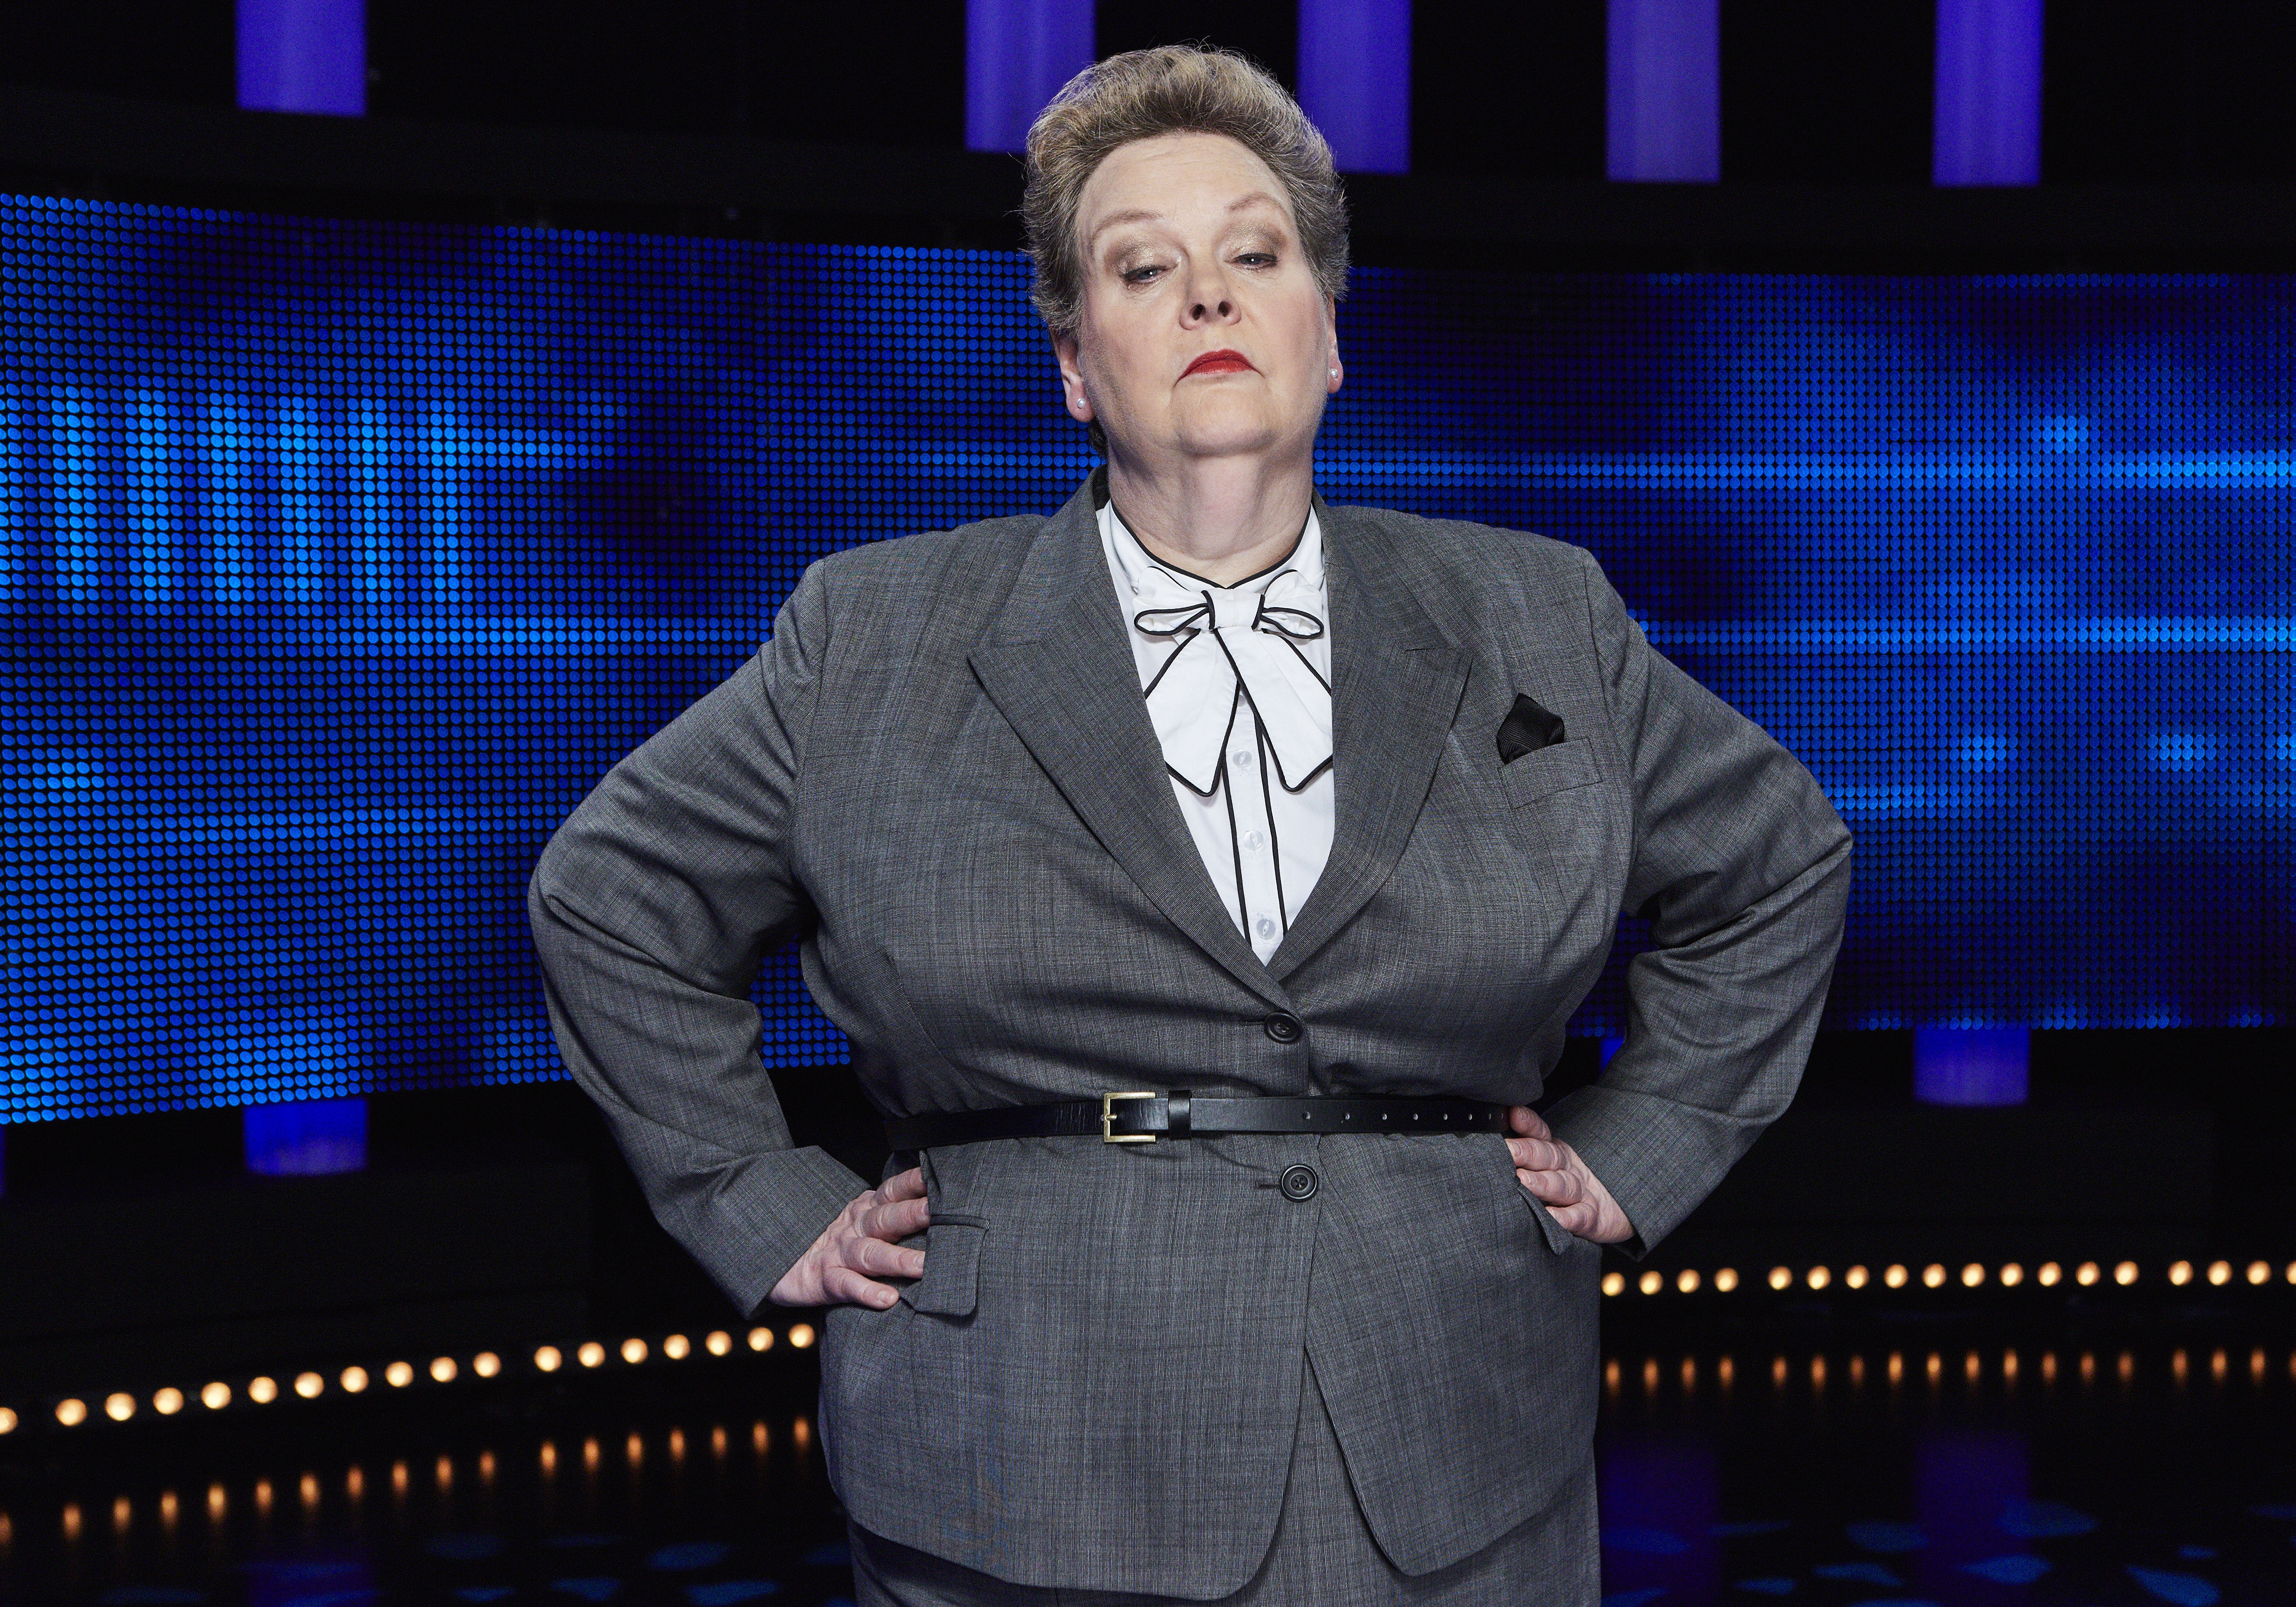 """Chaser, Anne """"The Governess"""" Hegerty on The Chase. (© ITV/Matt Frost)"""